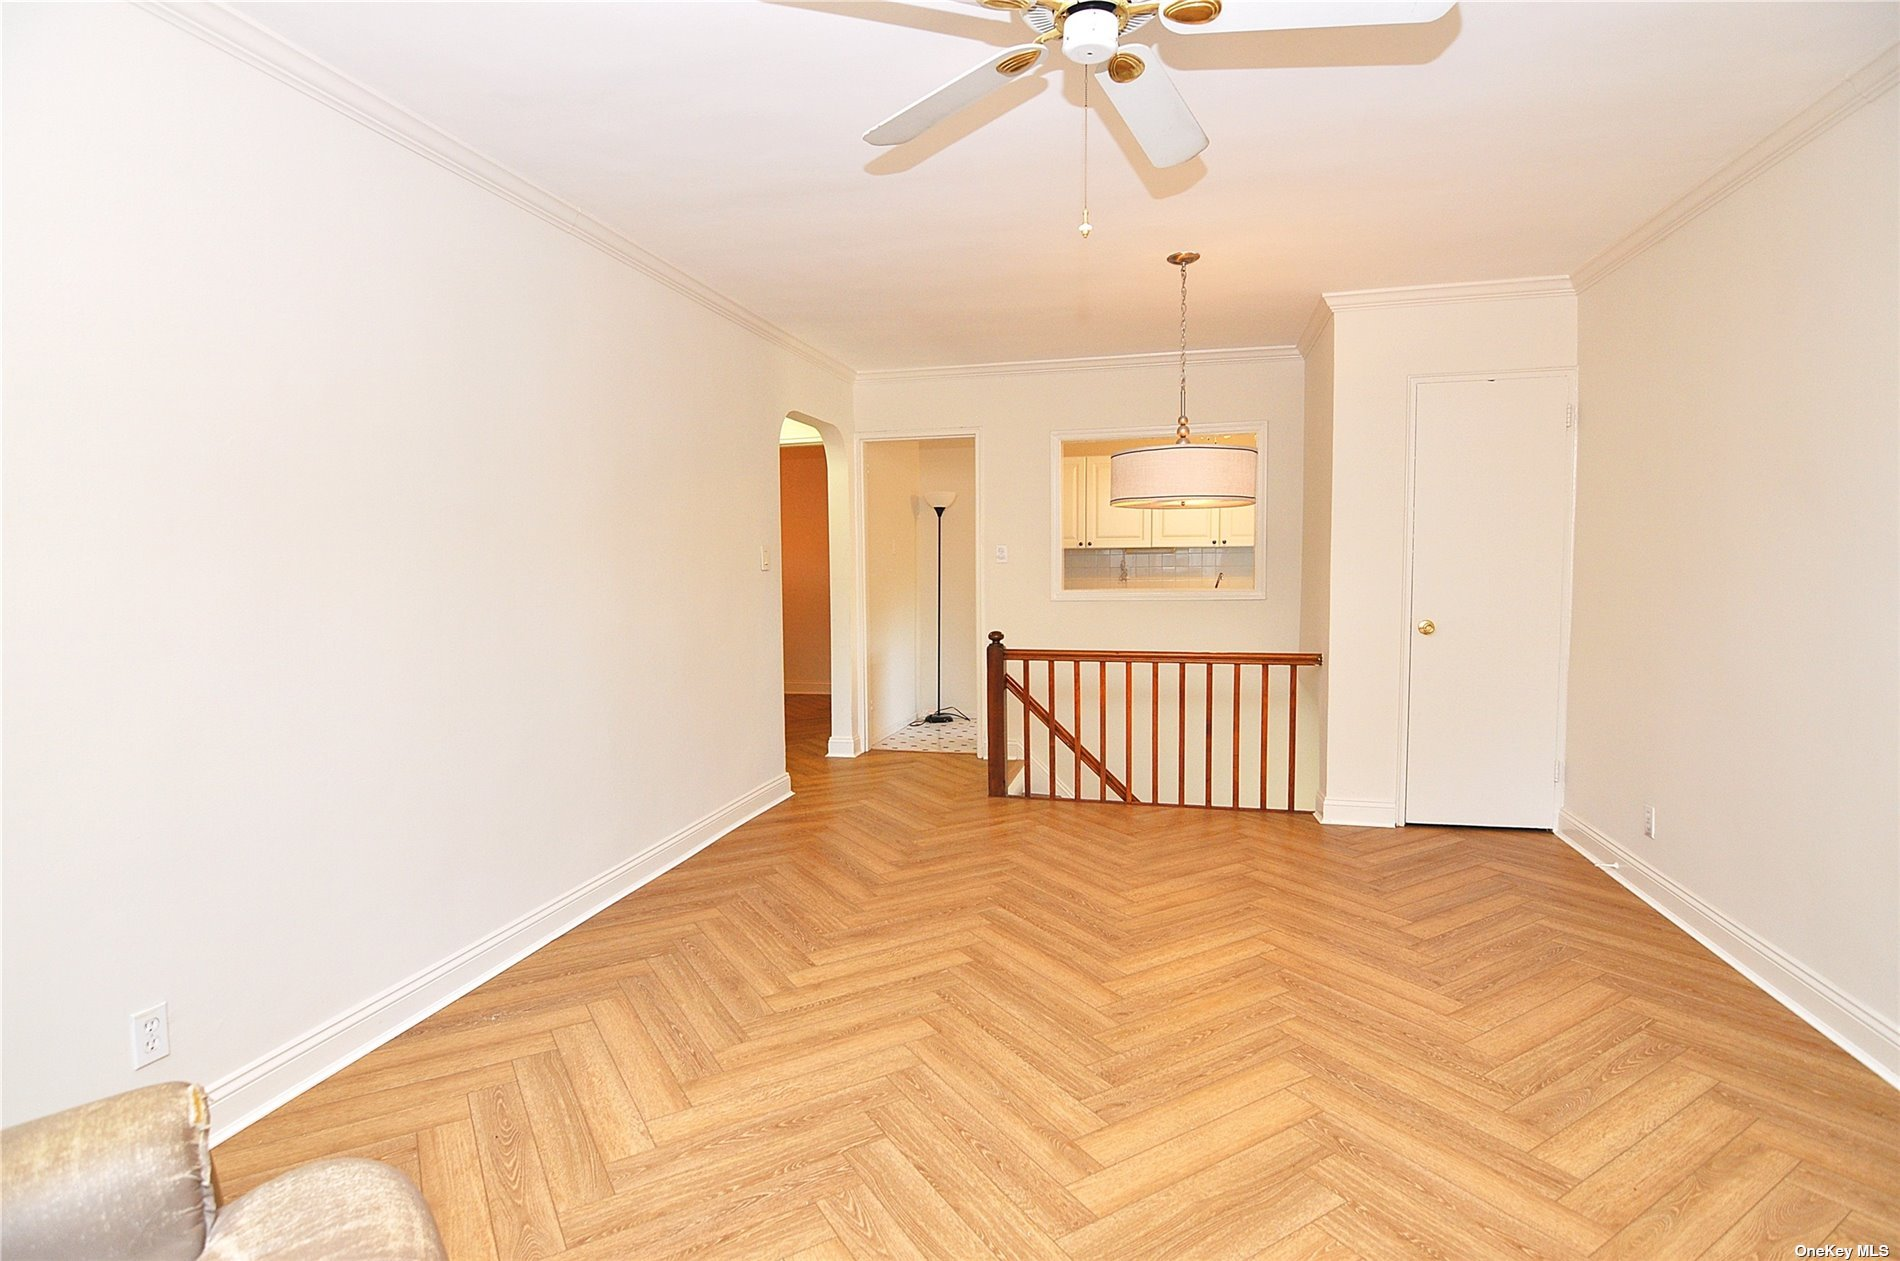 Upper Corner 2 Bedroom Coop Apt, Hardwood Floor Underneath Carpet, New Storm And Front Doors/Windows.Private Entrance, Bbq Ok, Parking Inc, Sd26. Qm5,Qm8,Q88,Q27, Lirr, Near Parks, Shops, School, Restaurants, Security, Pet Friendly, Dog Welcome, Rent Ok, No Flip Tax, Maintenance Includes All Except Electricity,  5 Laundry On Premise, Attic For Storage, 100% Equity Coop, Maintenance Tax Deductible, Lots Of Closets. Move In Condition. 360 Degree Virtual Tour Available